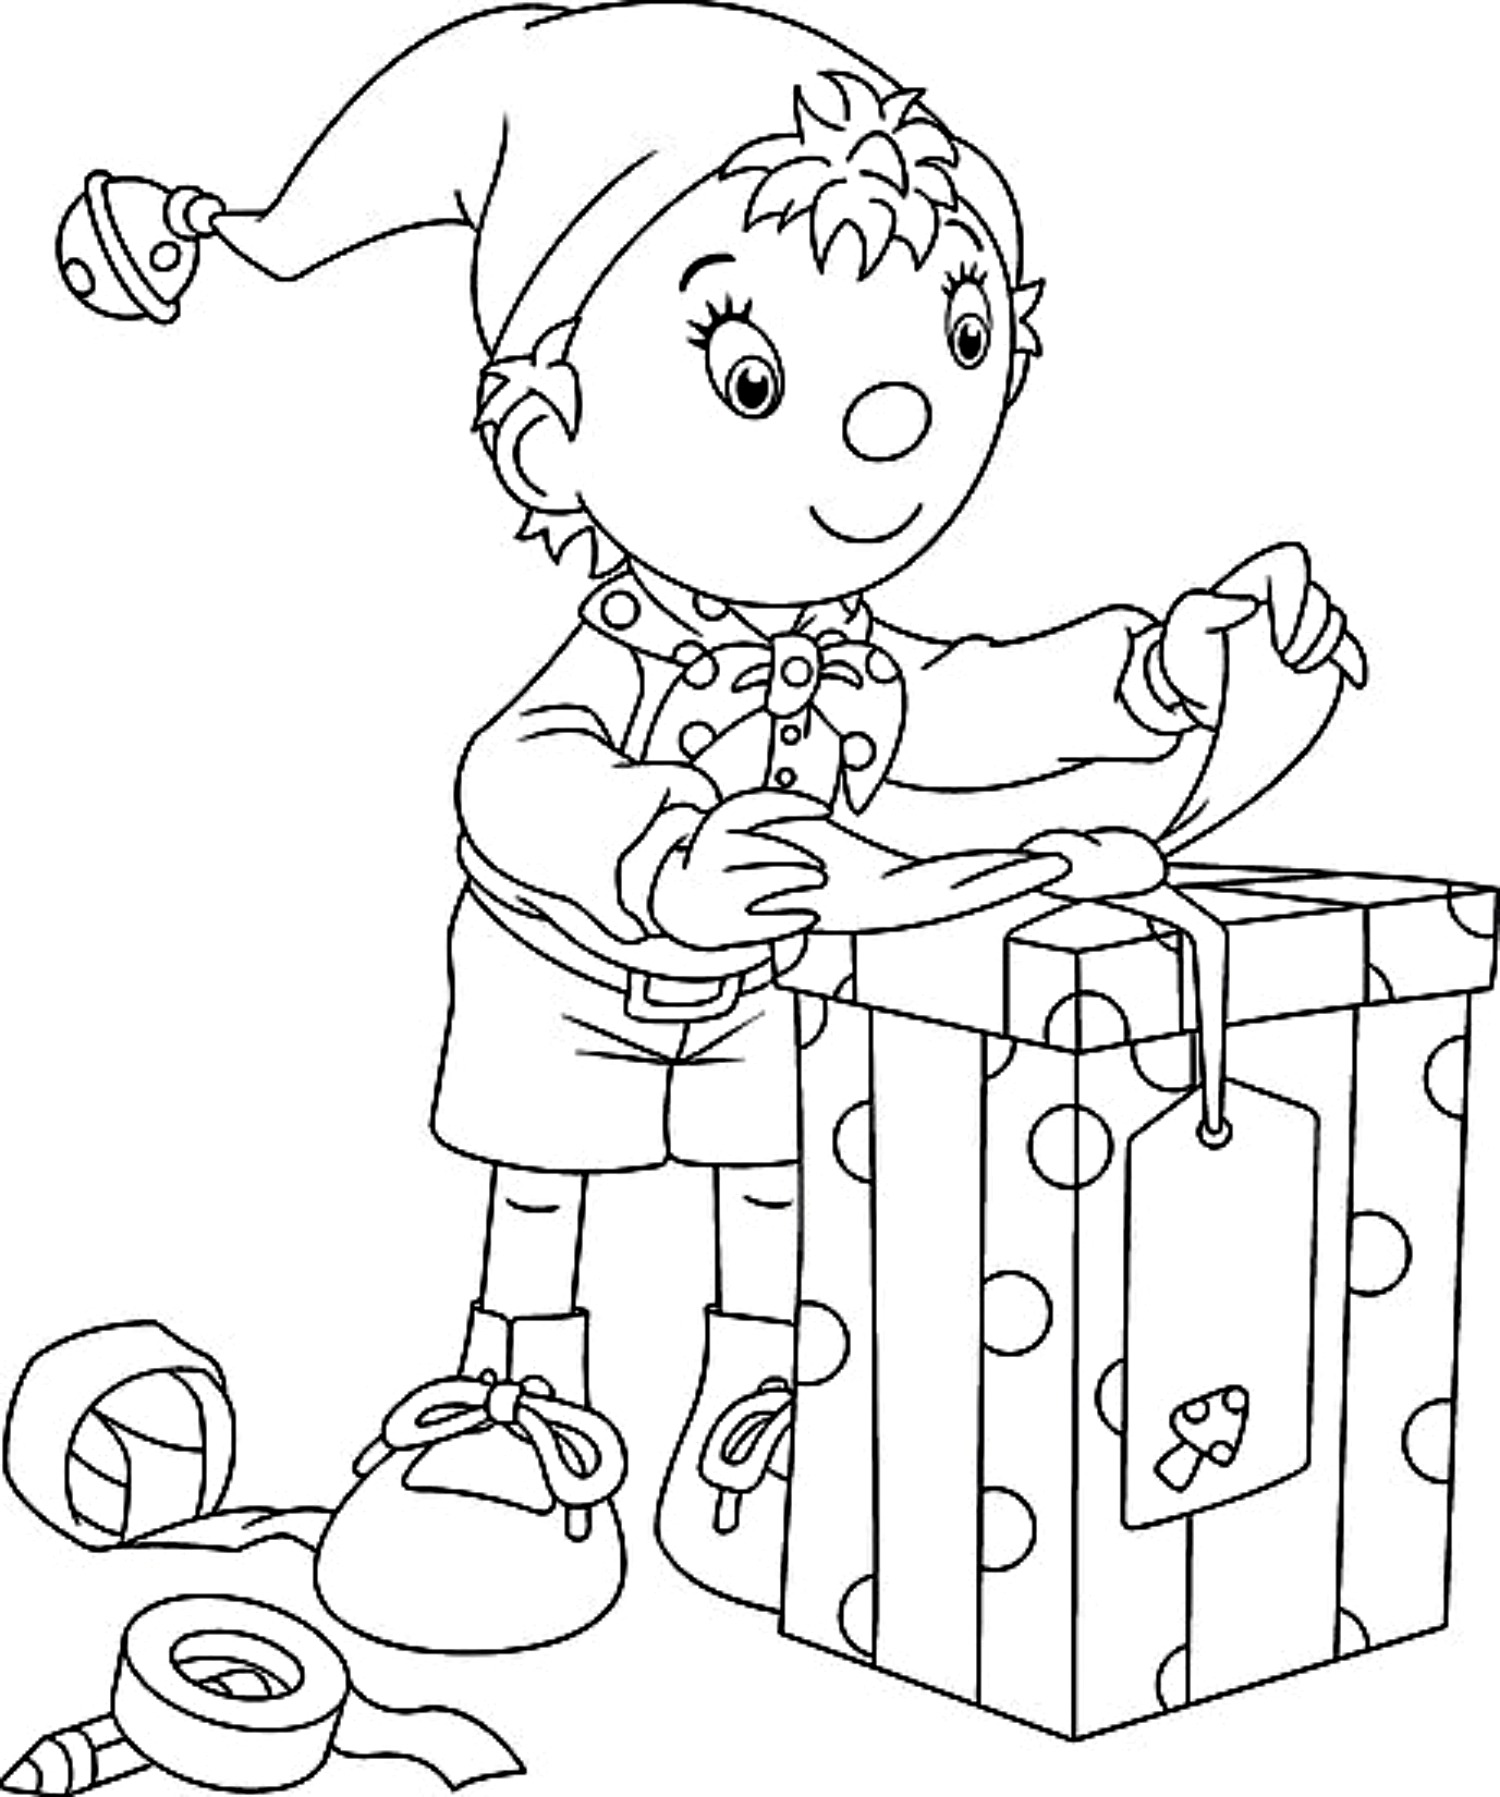 Free Printable Kindergarten Coloring Pages For Kids Free Printable Coloring Sheets For Kindergarten